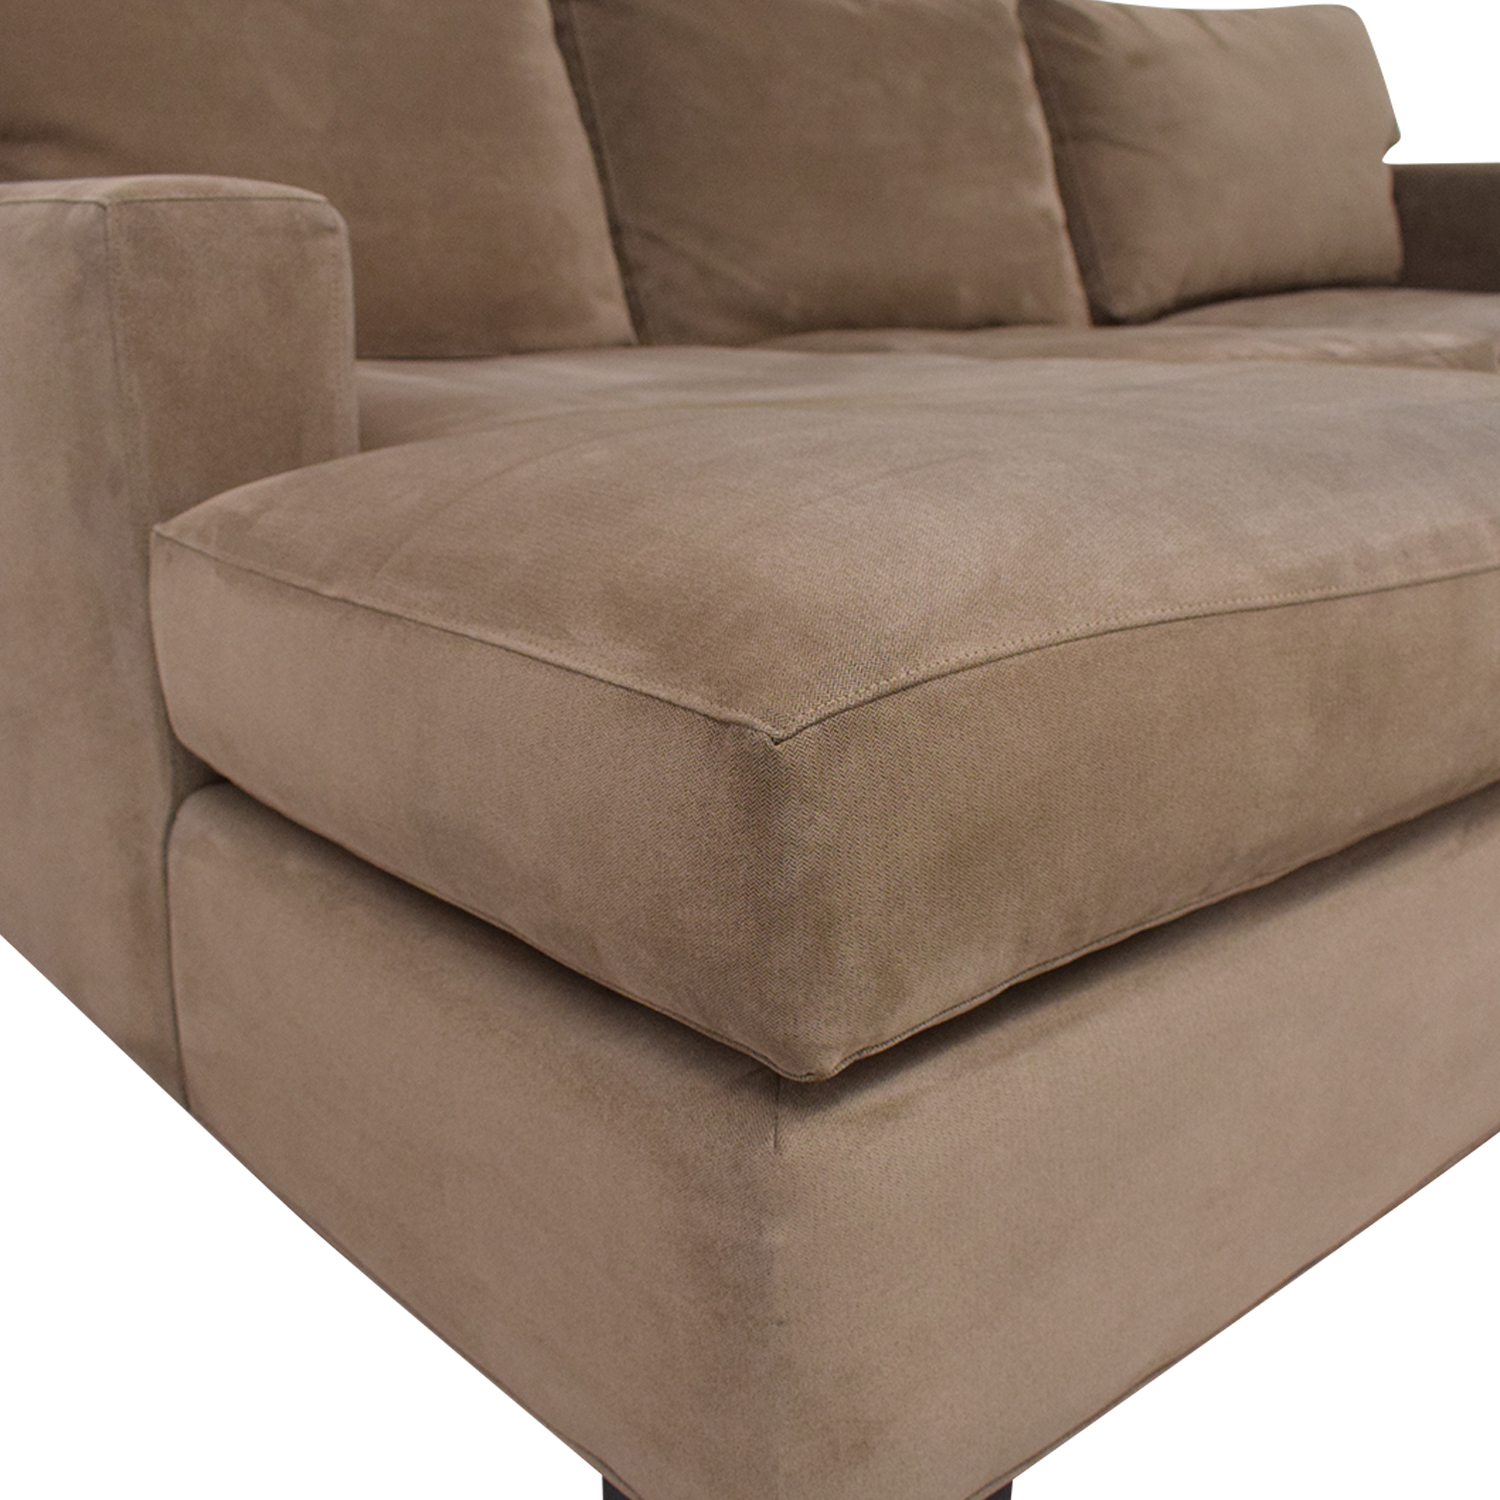 Crate & Barrel Axis II Sectional Sofa / Sofas